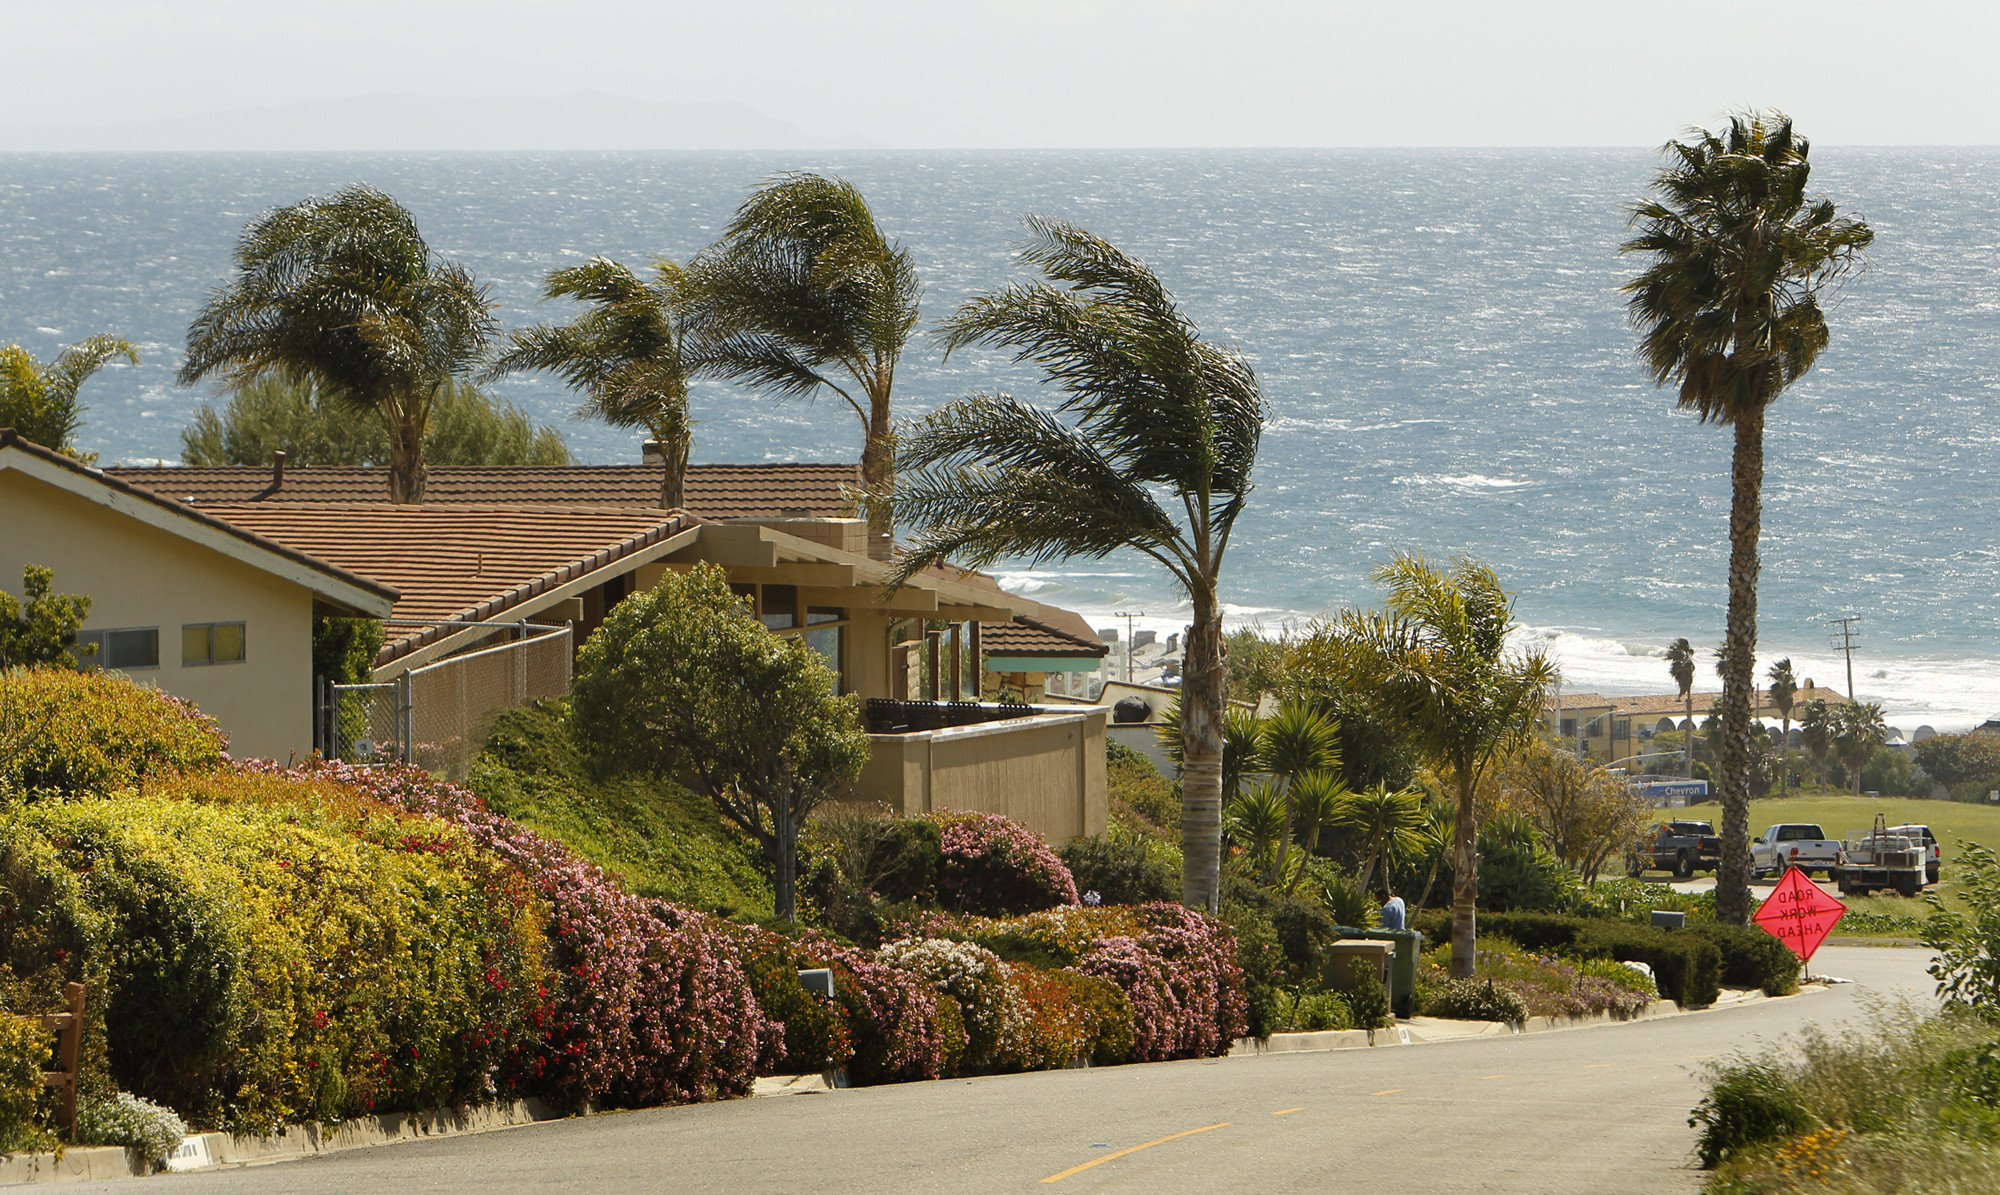 Wealthy L.A. areas use far more energy than poor ones